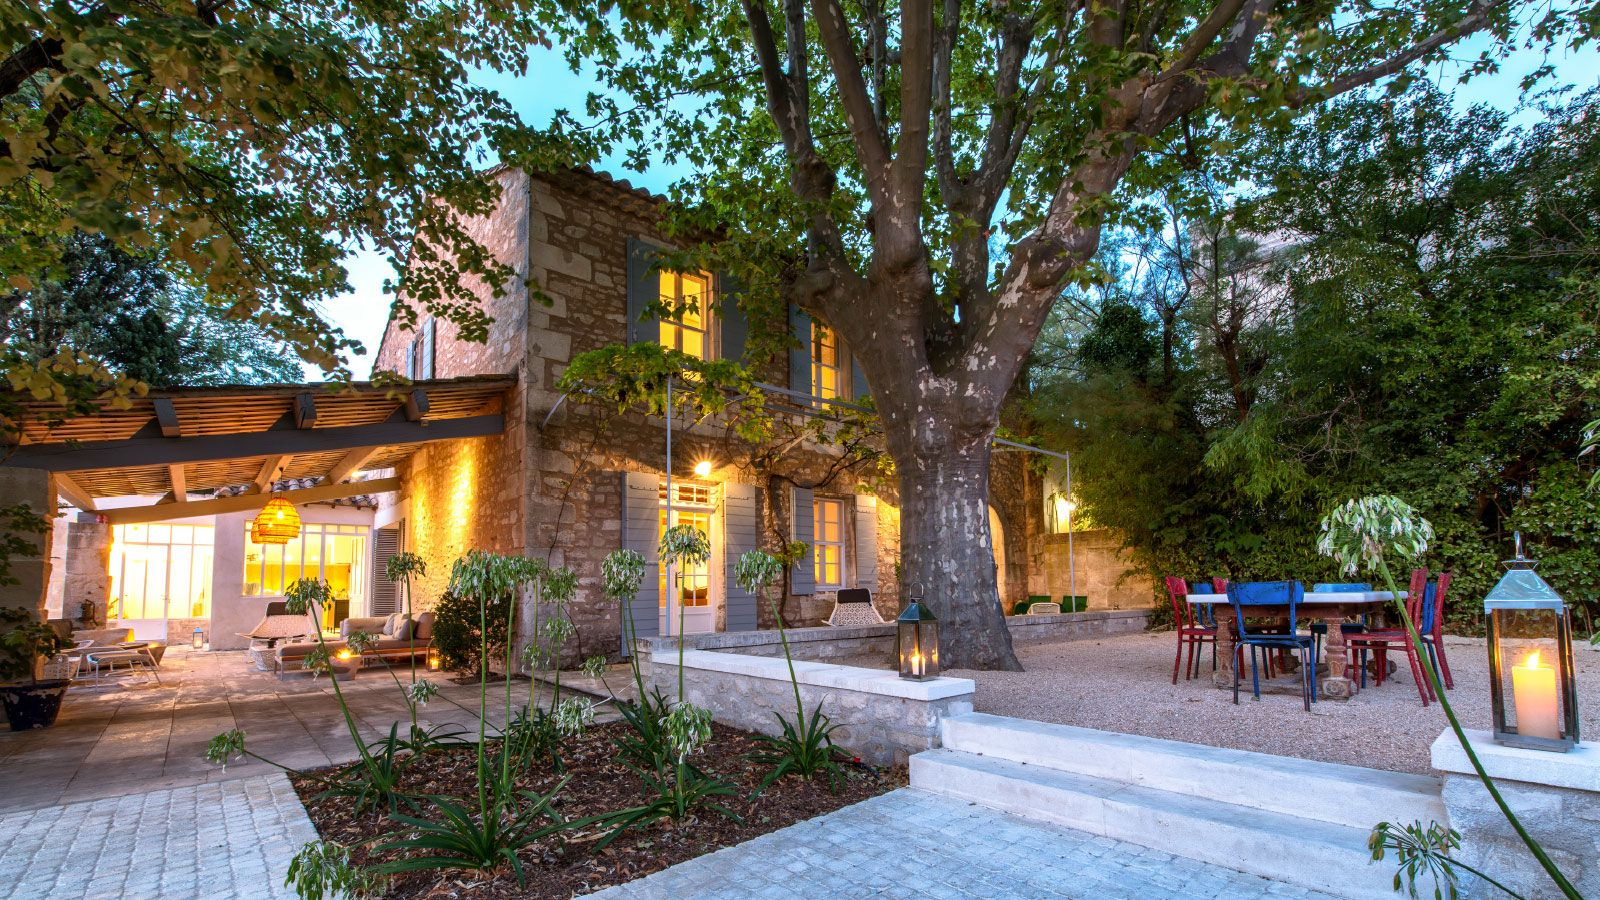 Luxury Vacation Rentals and Villas in South of France Saint-Rémy-de-Provence